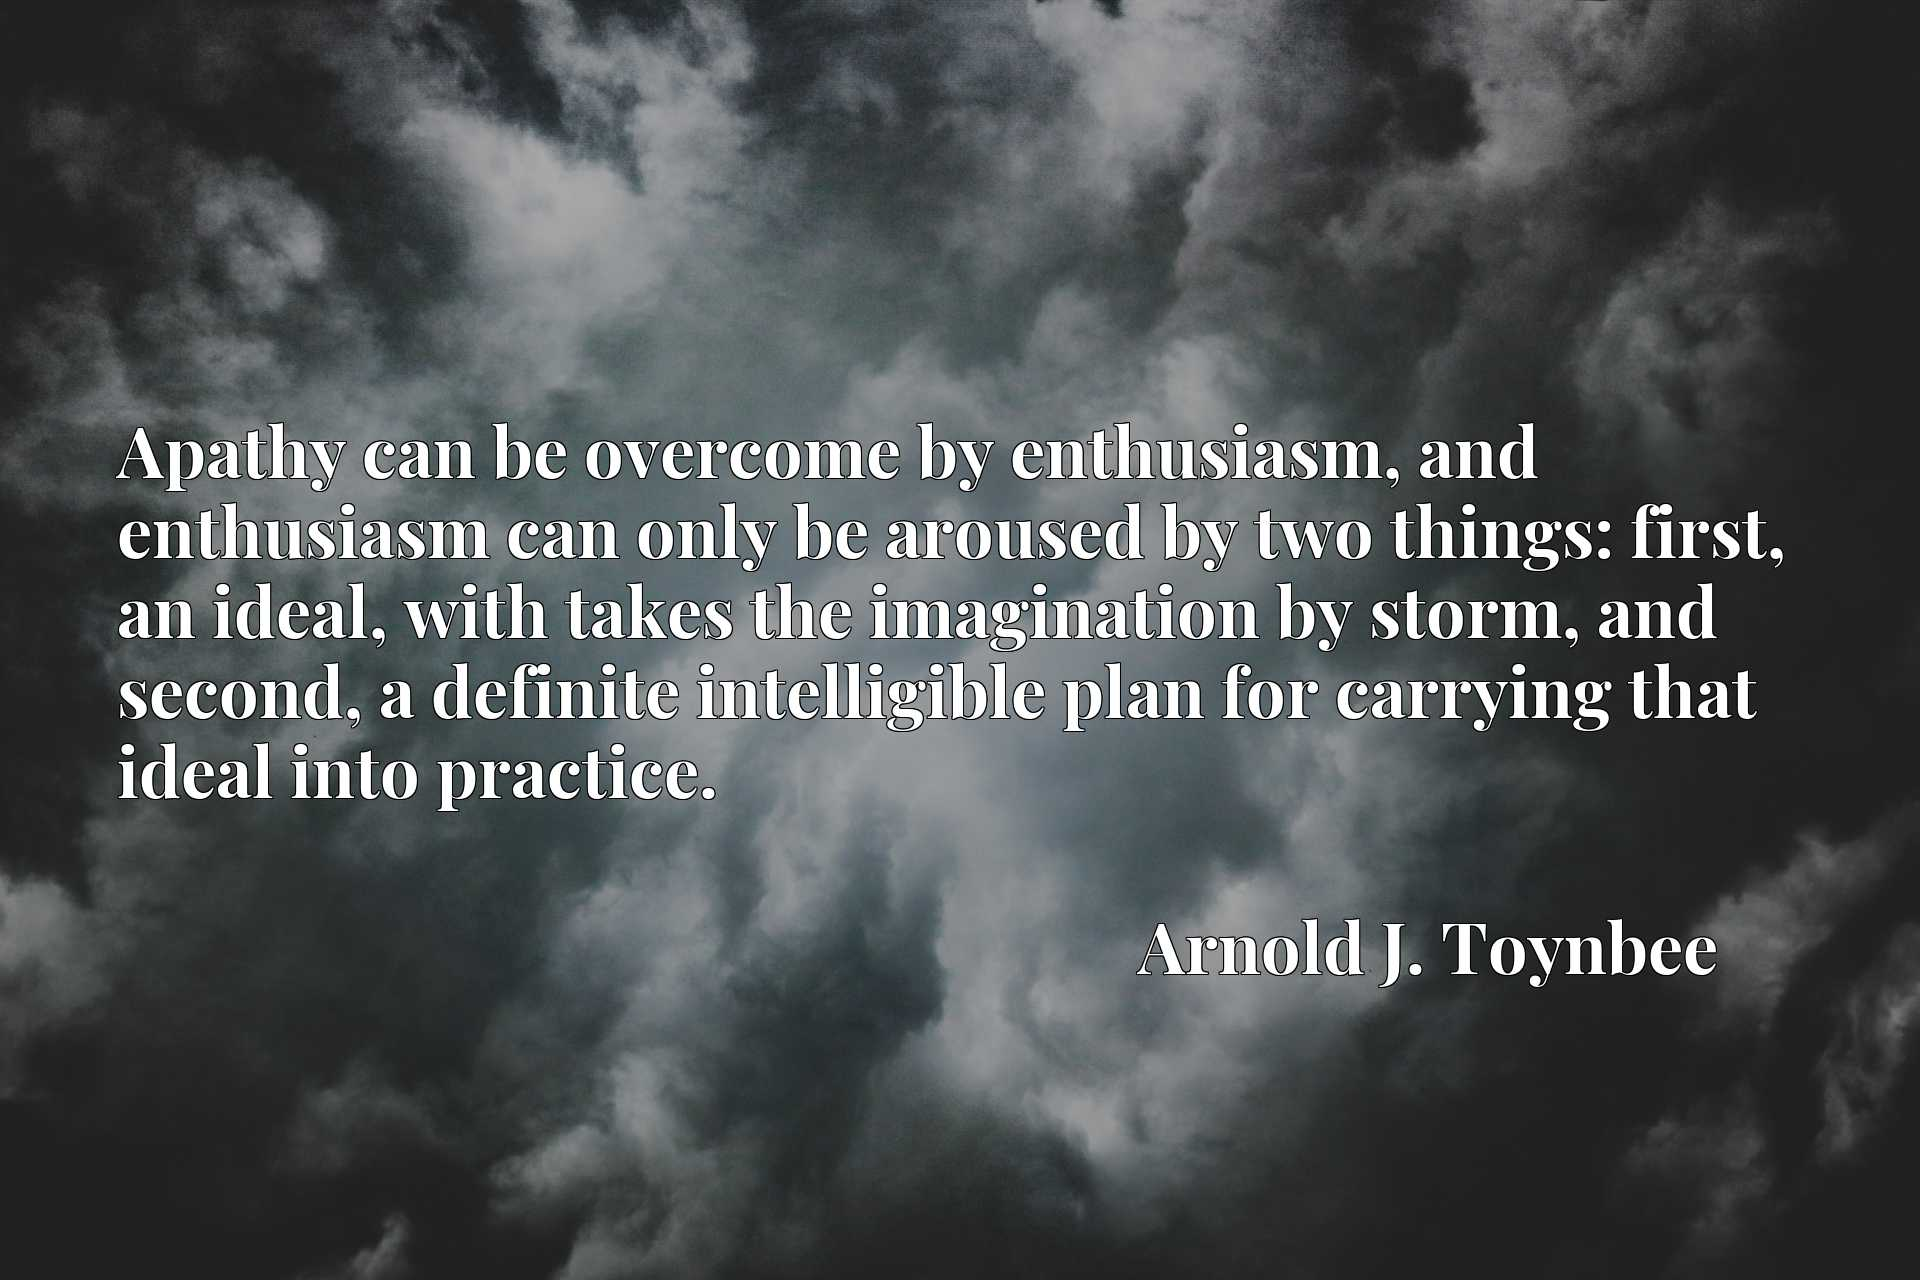 Quote Picture :Apathy can be overcome by enthusiasm, and enthusiasm can only be aroused by two things: first, an ideal, with takes the imagination by storm, and second, a definite intelligible plan for carrying that ideal into practice.